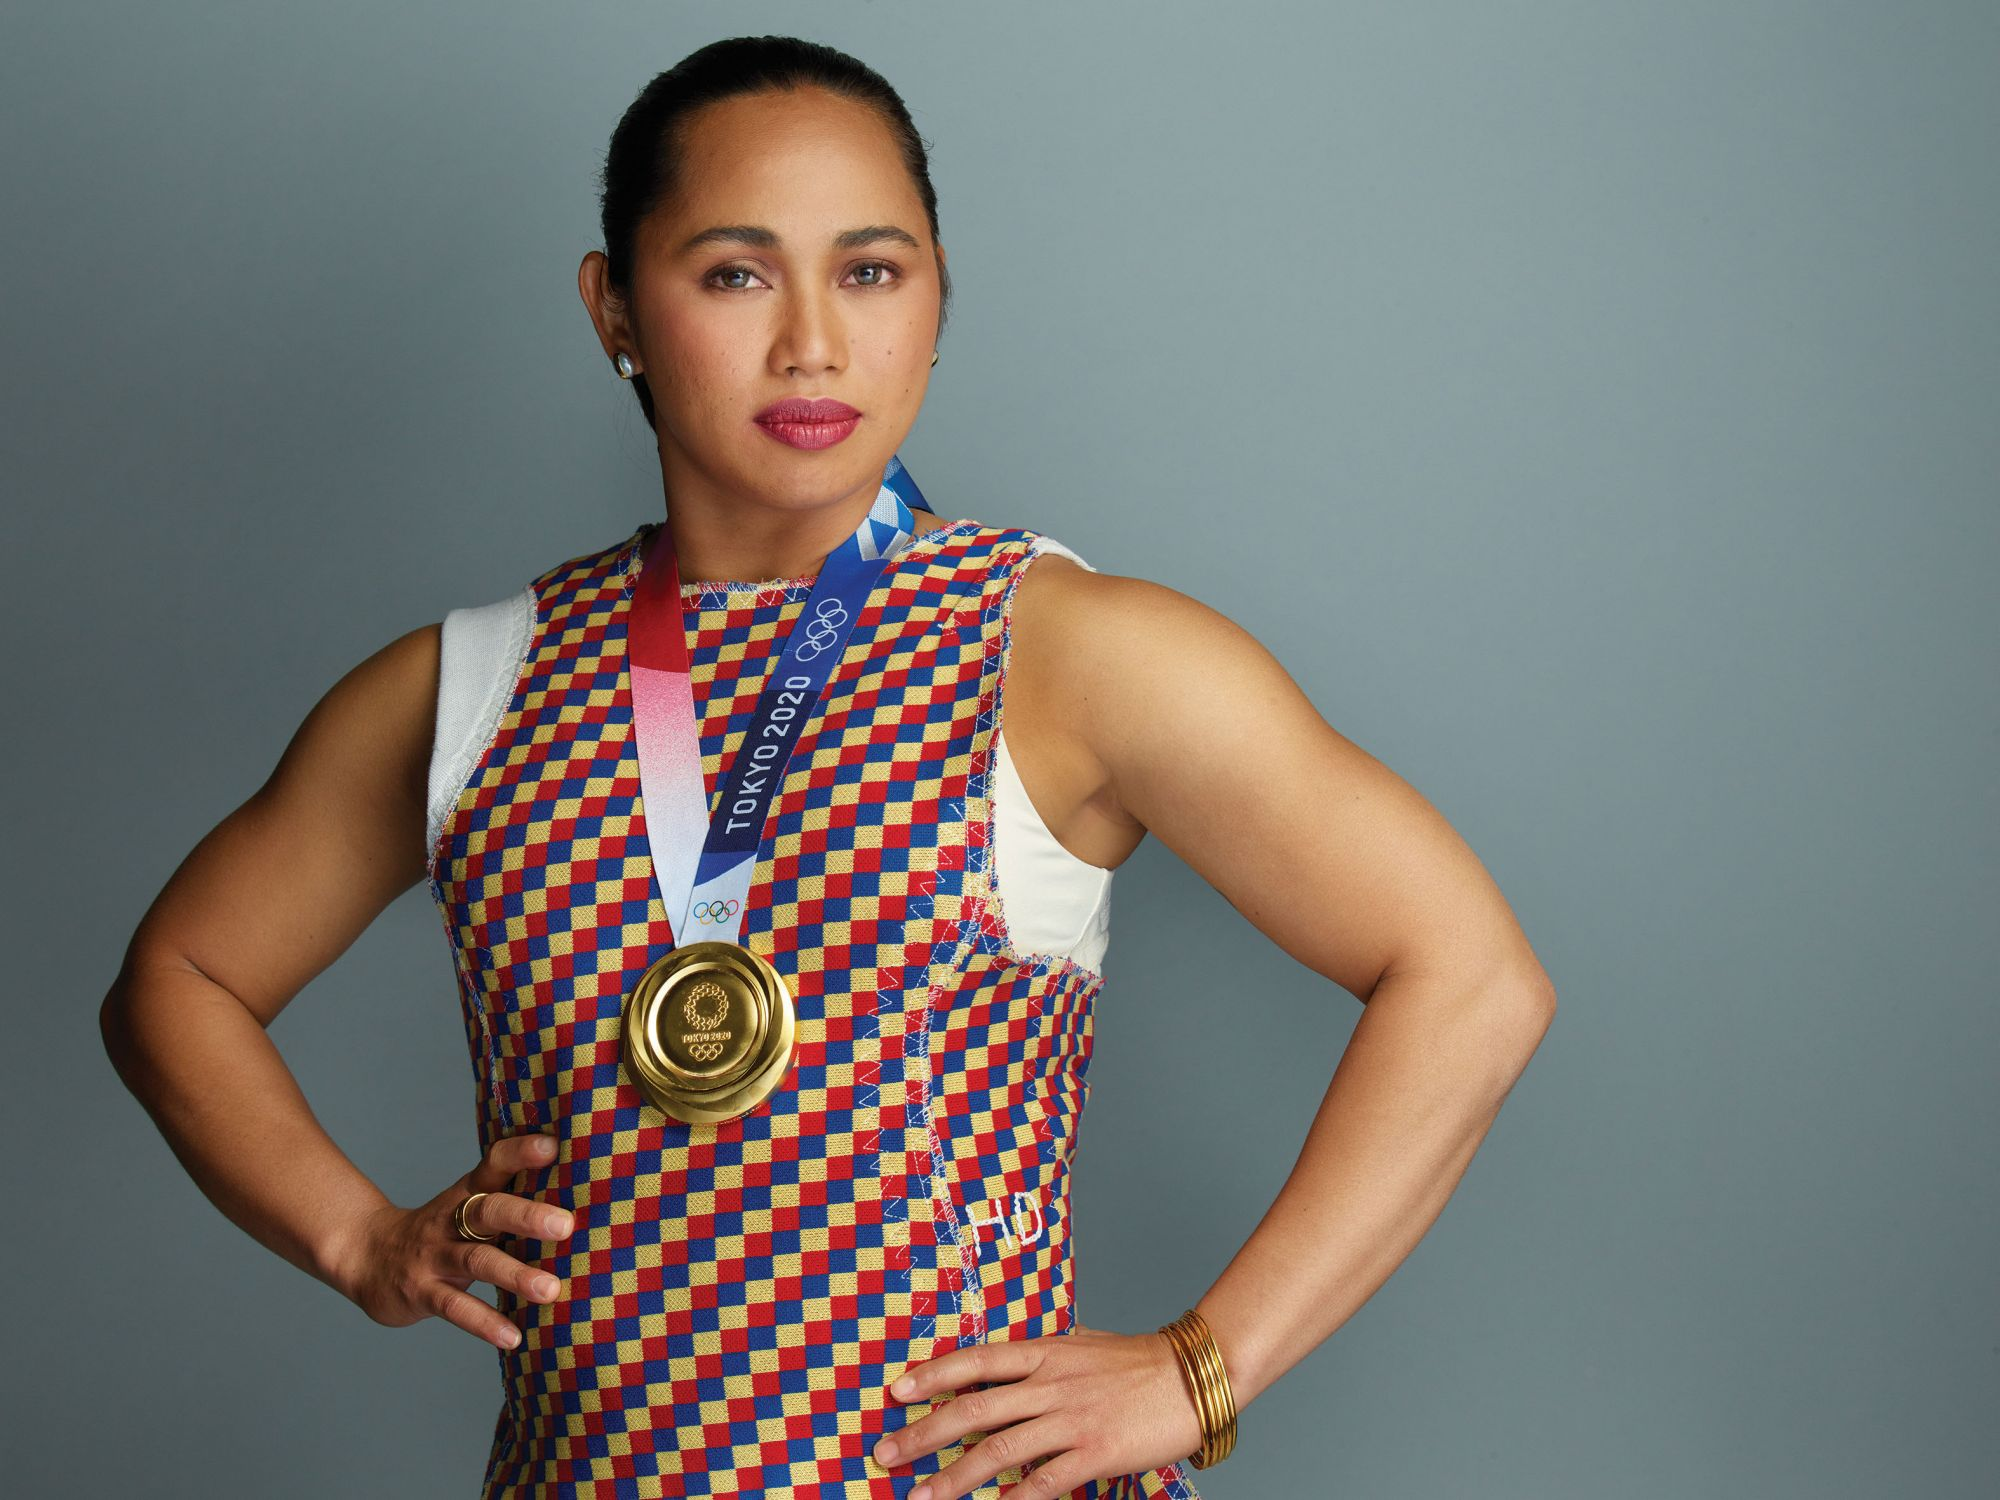 Olympian Hidilyn Diaz On The Tough Road She Faced To Claim the Philippines' First Olympic Gold